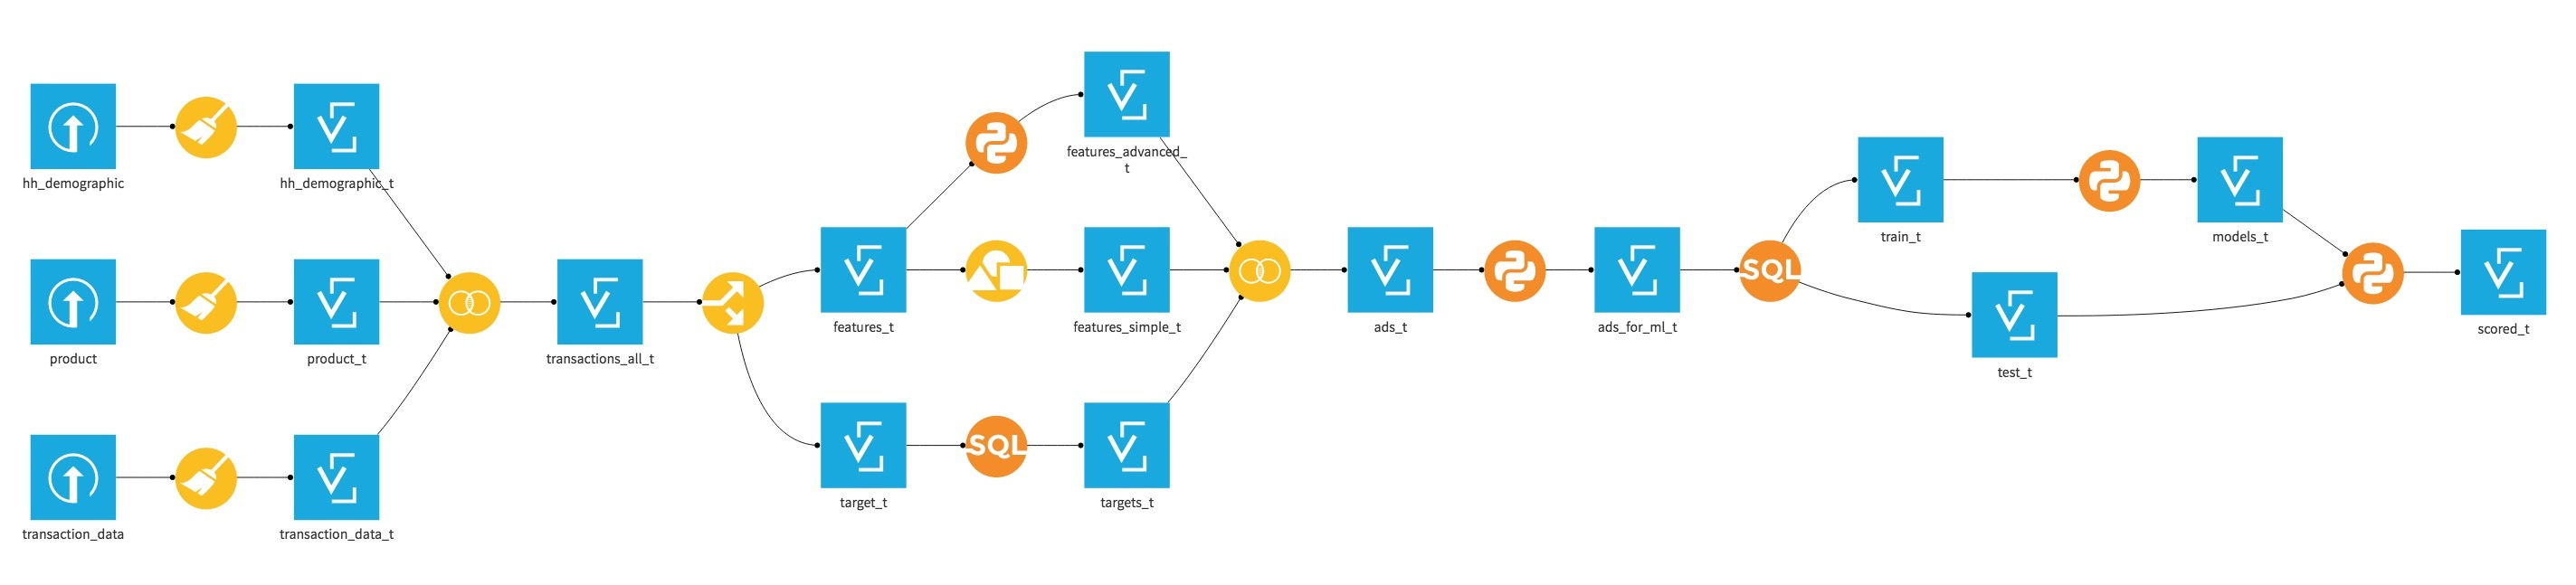 predictive application as a workflow in Dataiku DSS